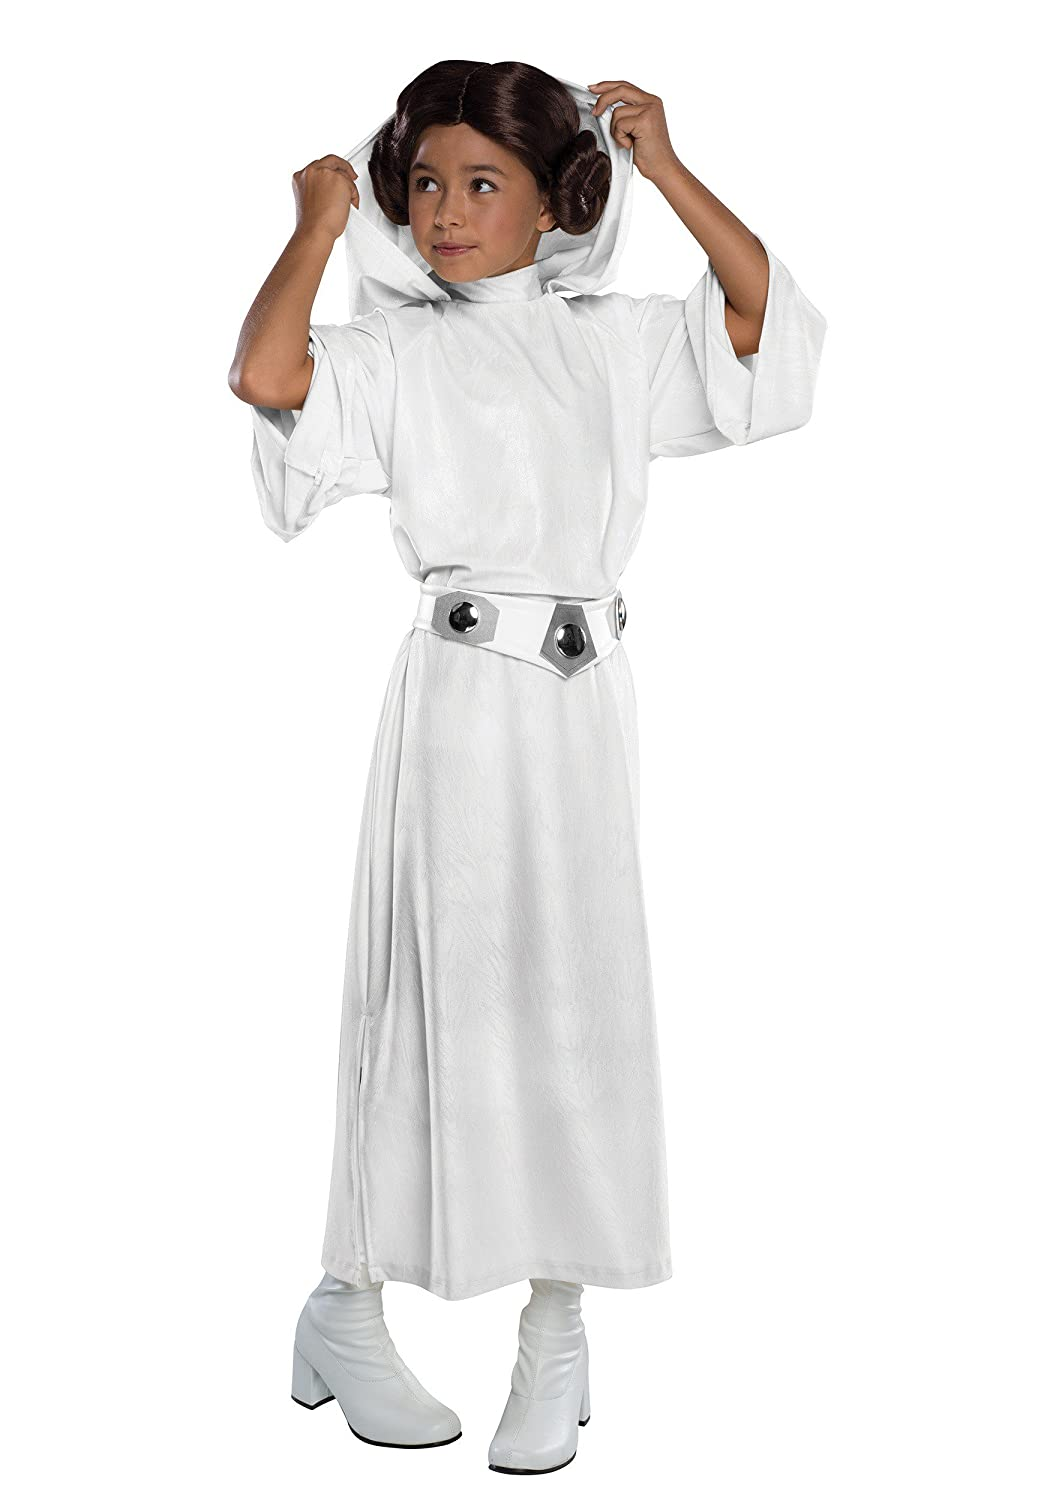 Amazon.com: Rubie\'s Costume Star Wars Classic Princess Leia Deluxe ...